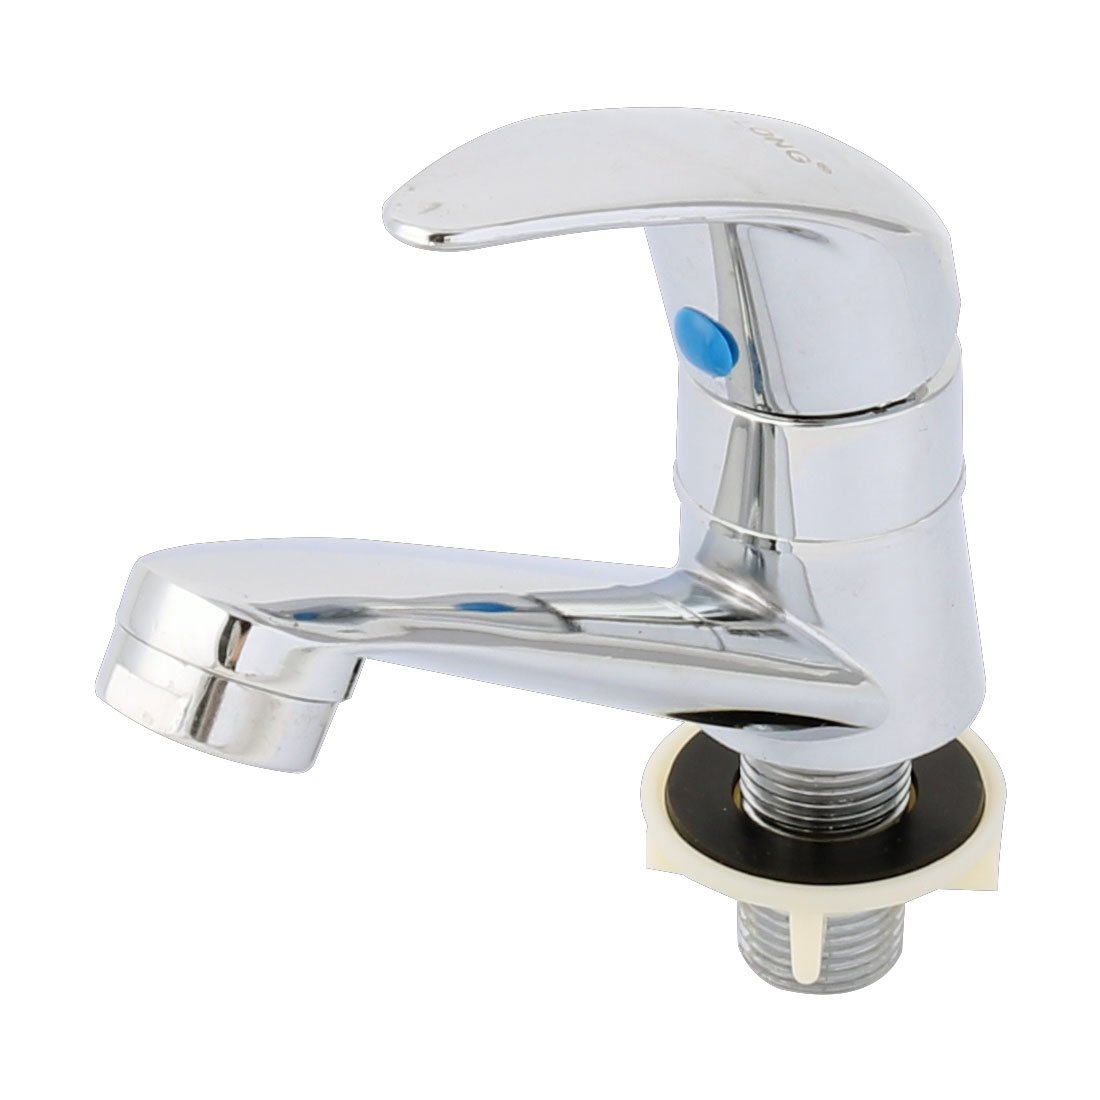 uxcell Stainless Steel Bathroom Kitchen Sink 20mm Threaded Replace Water Tap Faucet